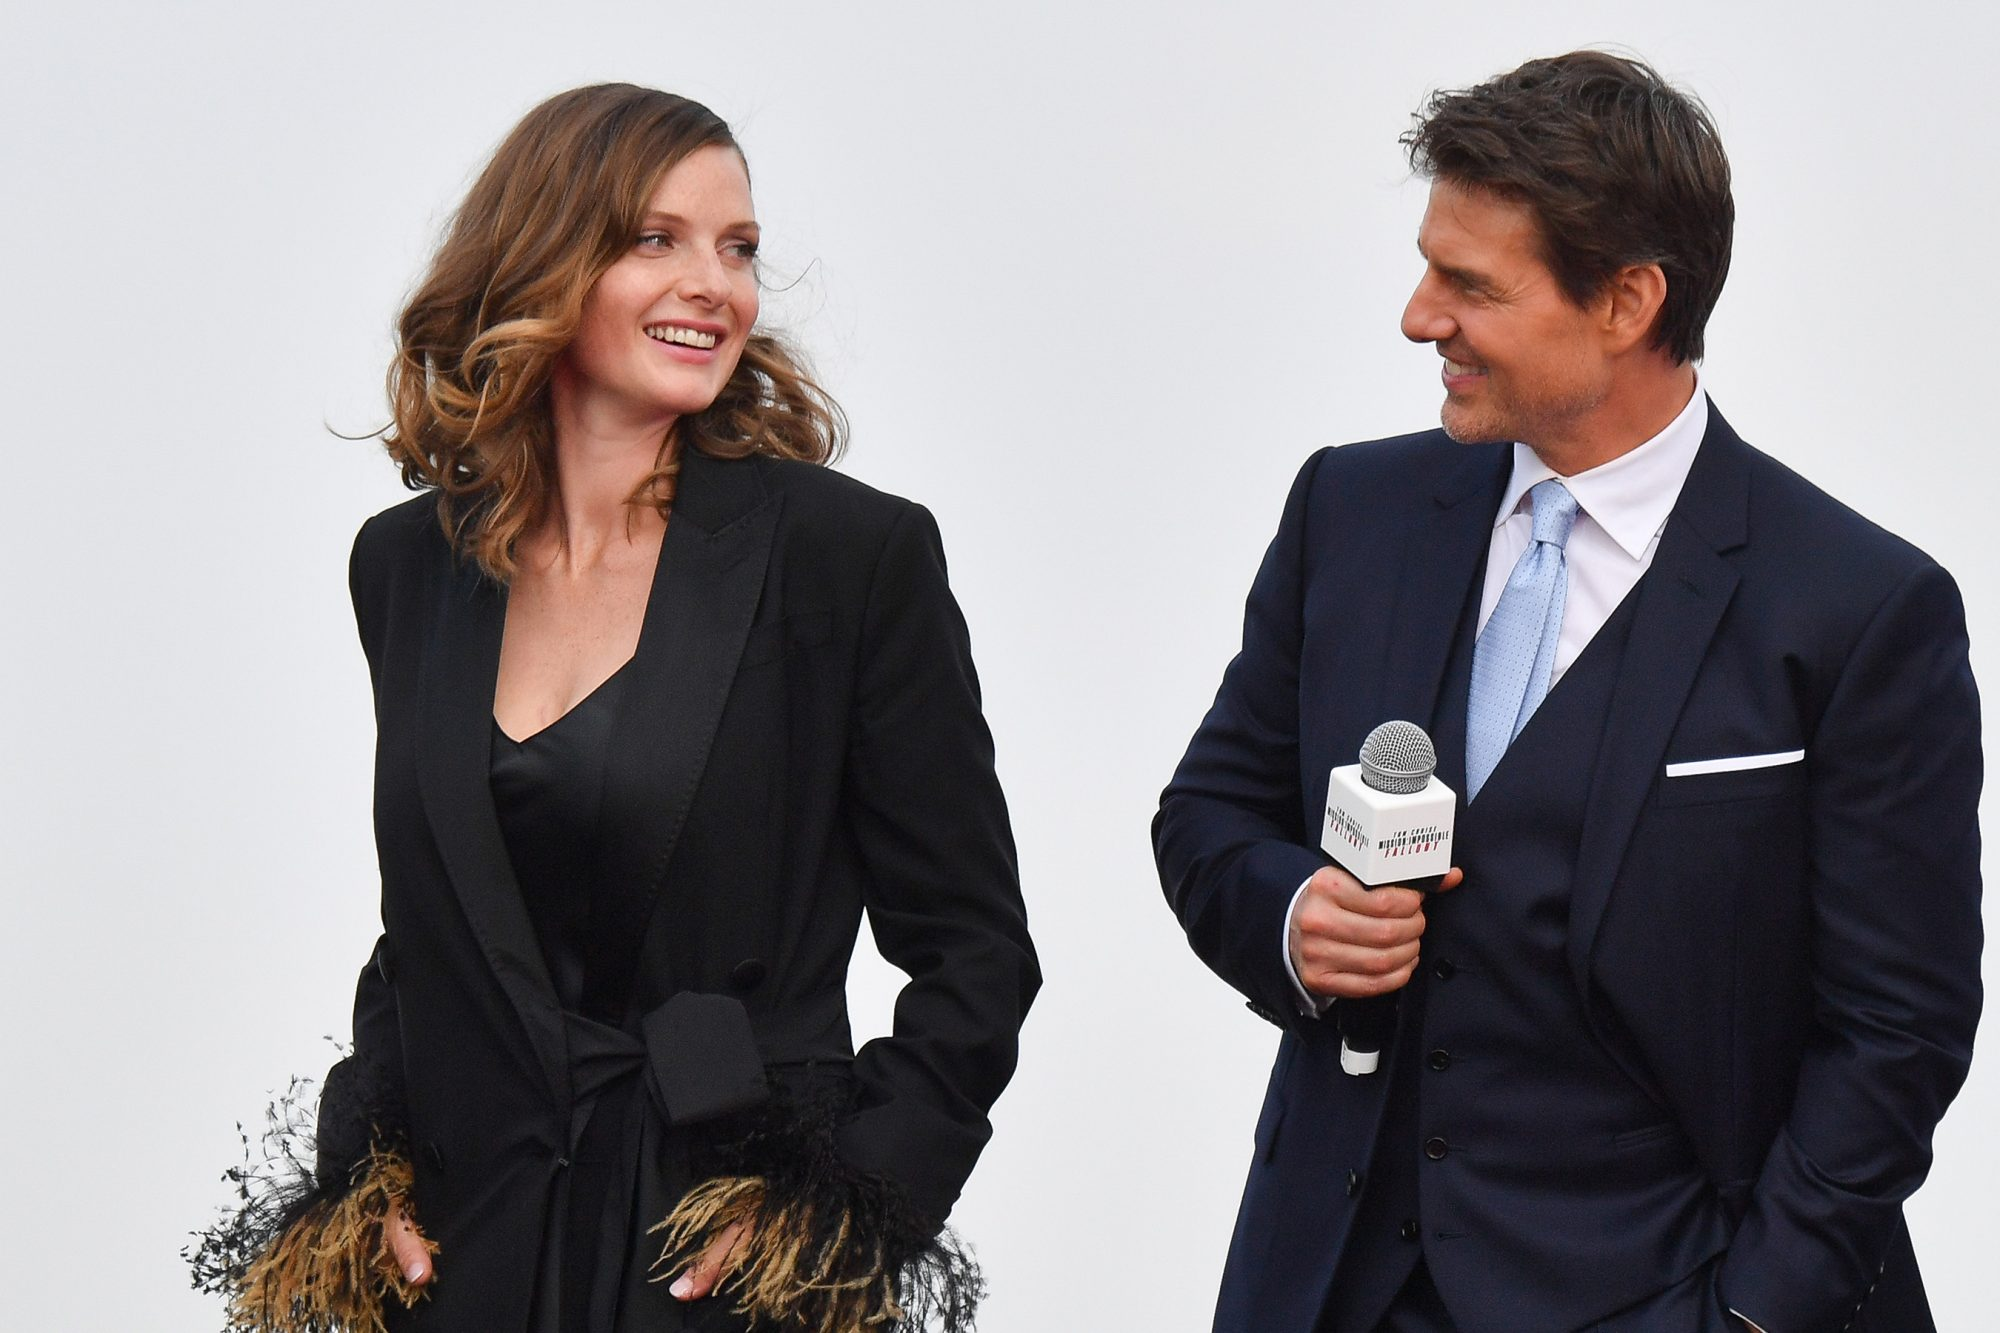 'Mission: Impossible - Fallout' Global Premiere in Paris